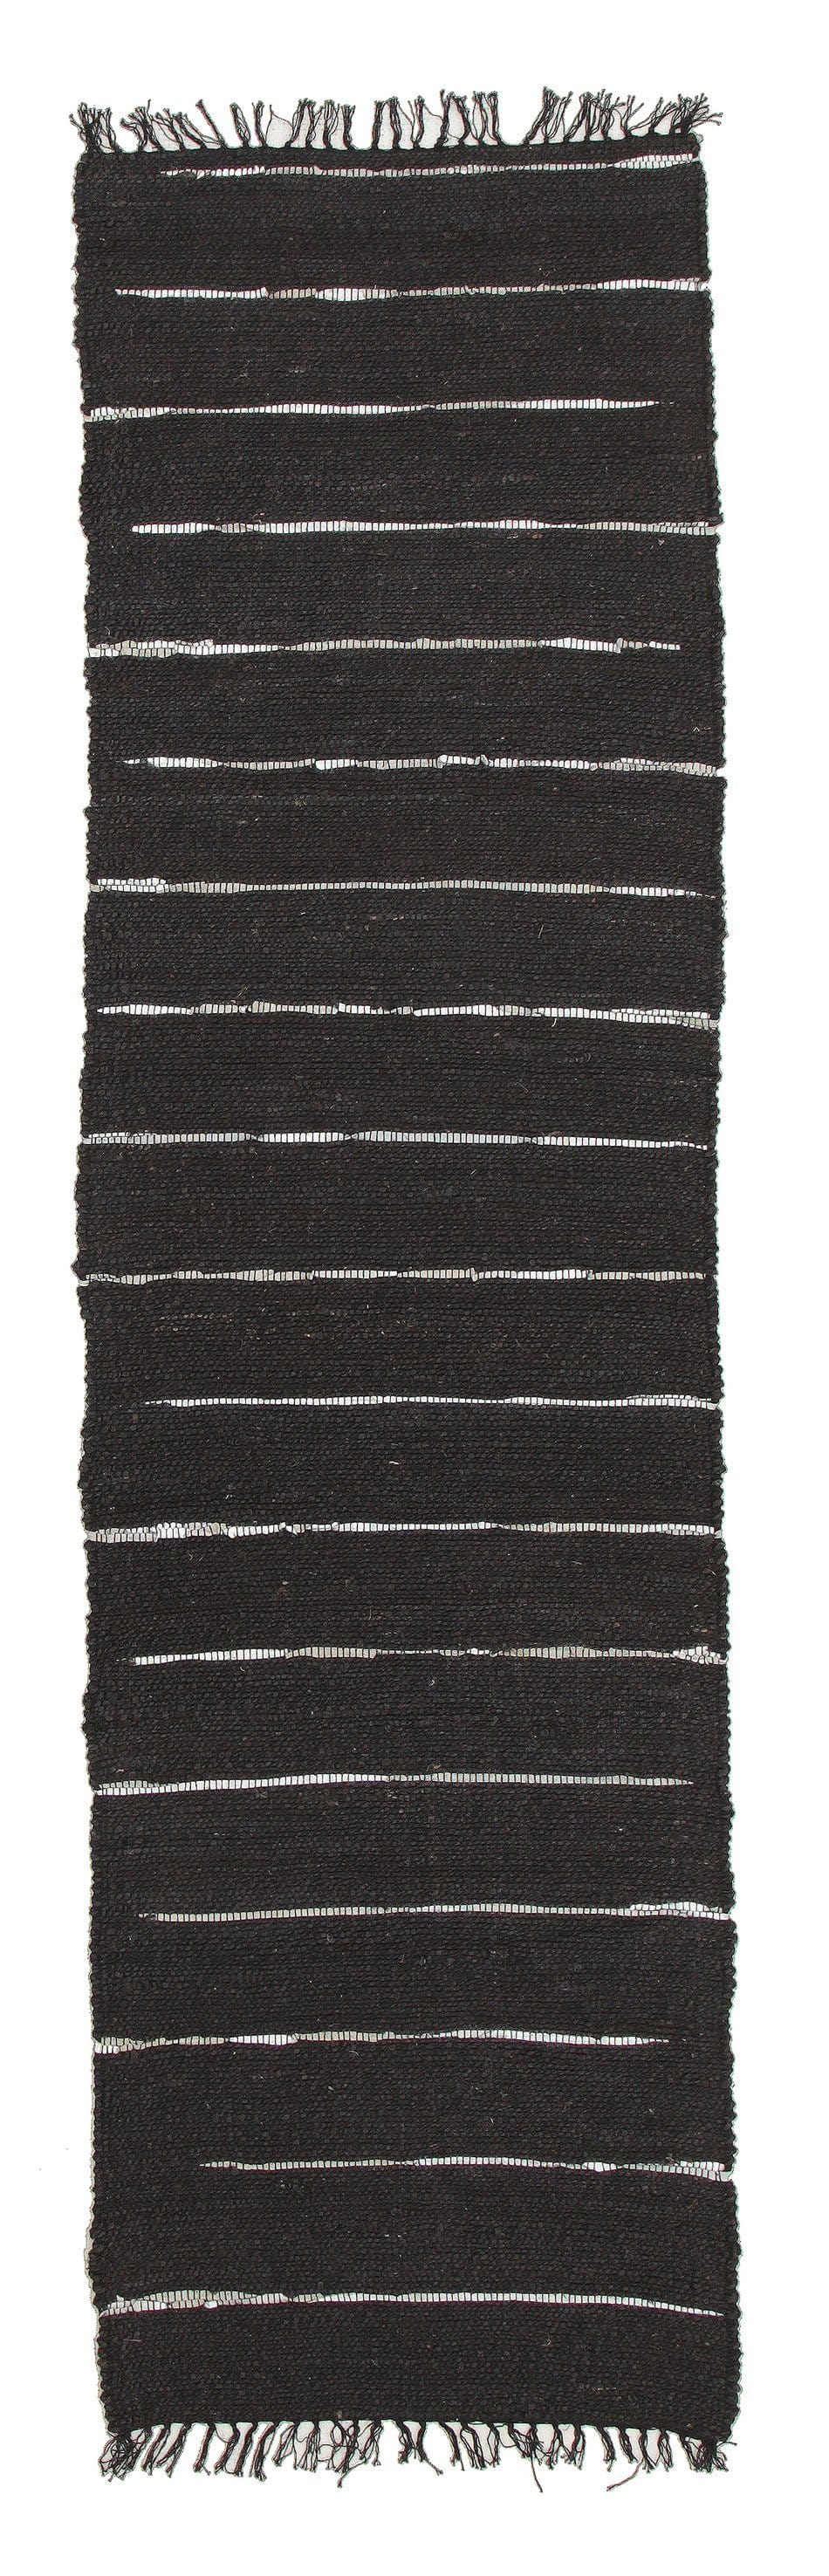 Nubra Black Jute & Metallic Leather Runner Rug